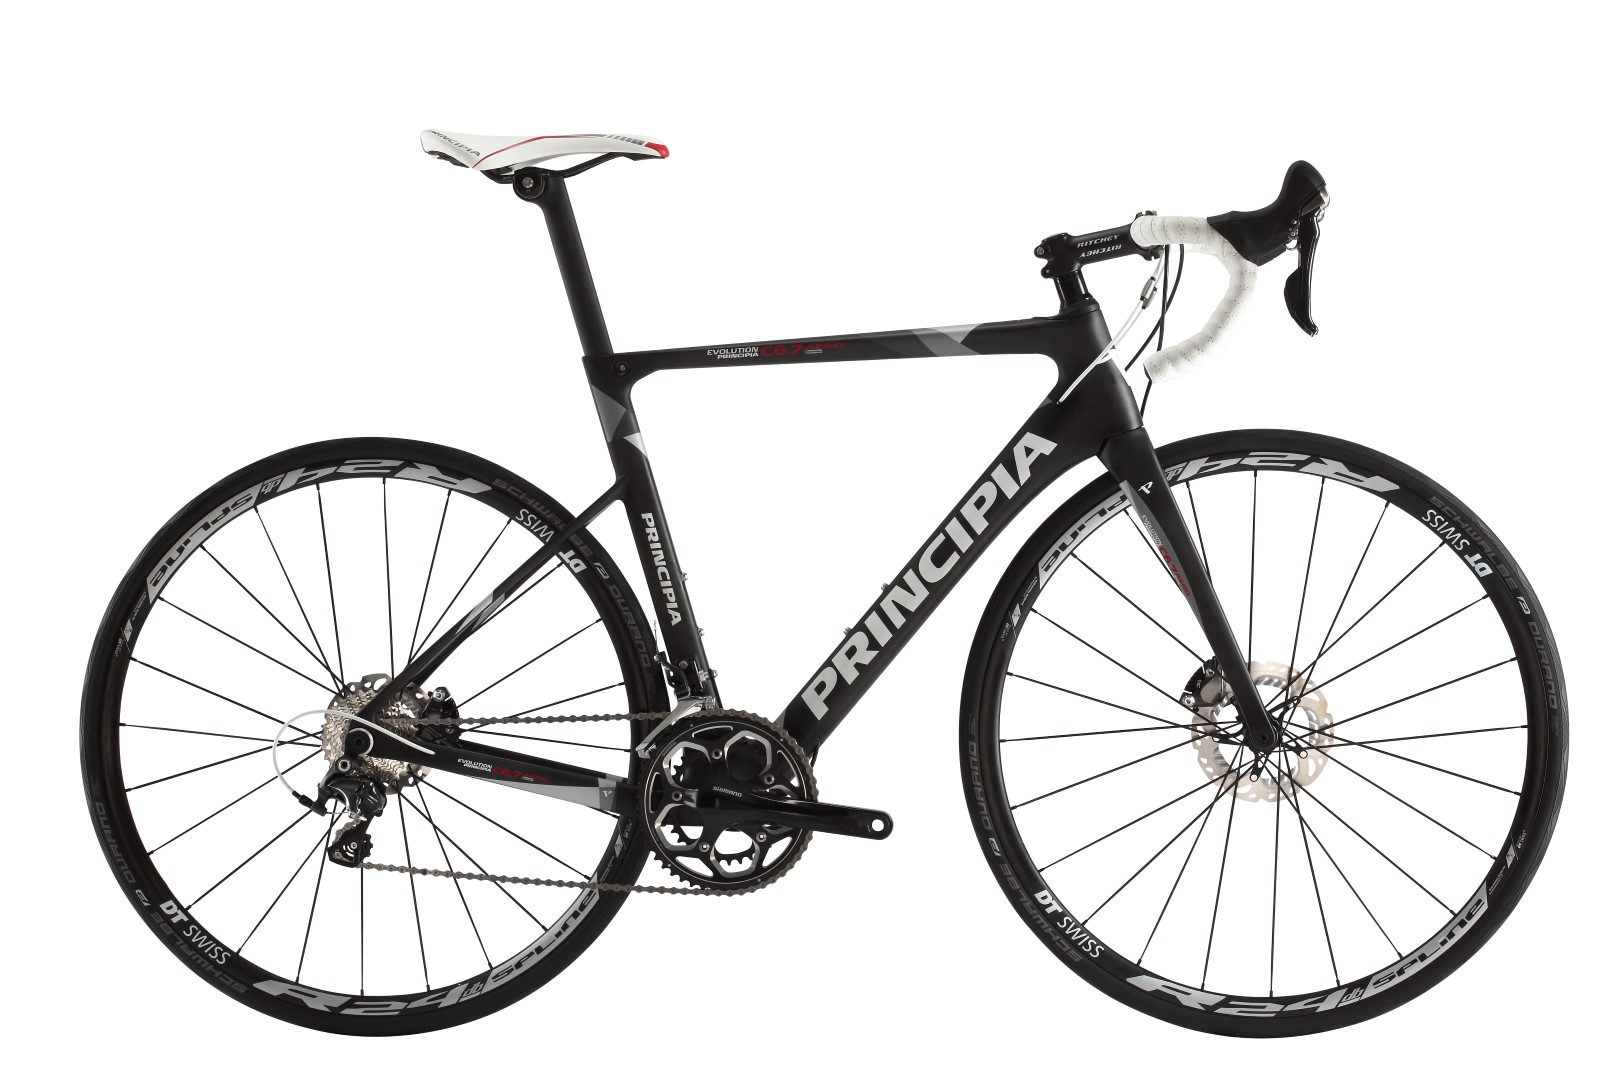 Principia Evolution C6.7 Aero 22Sp Shimano Ultegra Carbon Sort, 2017